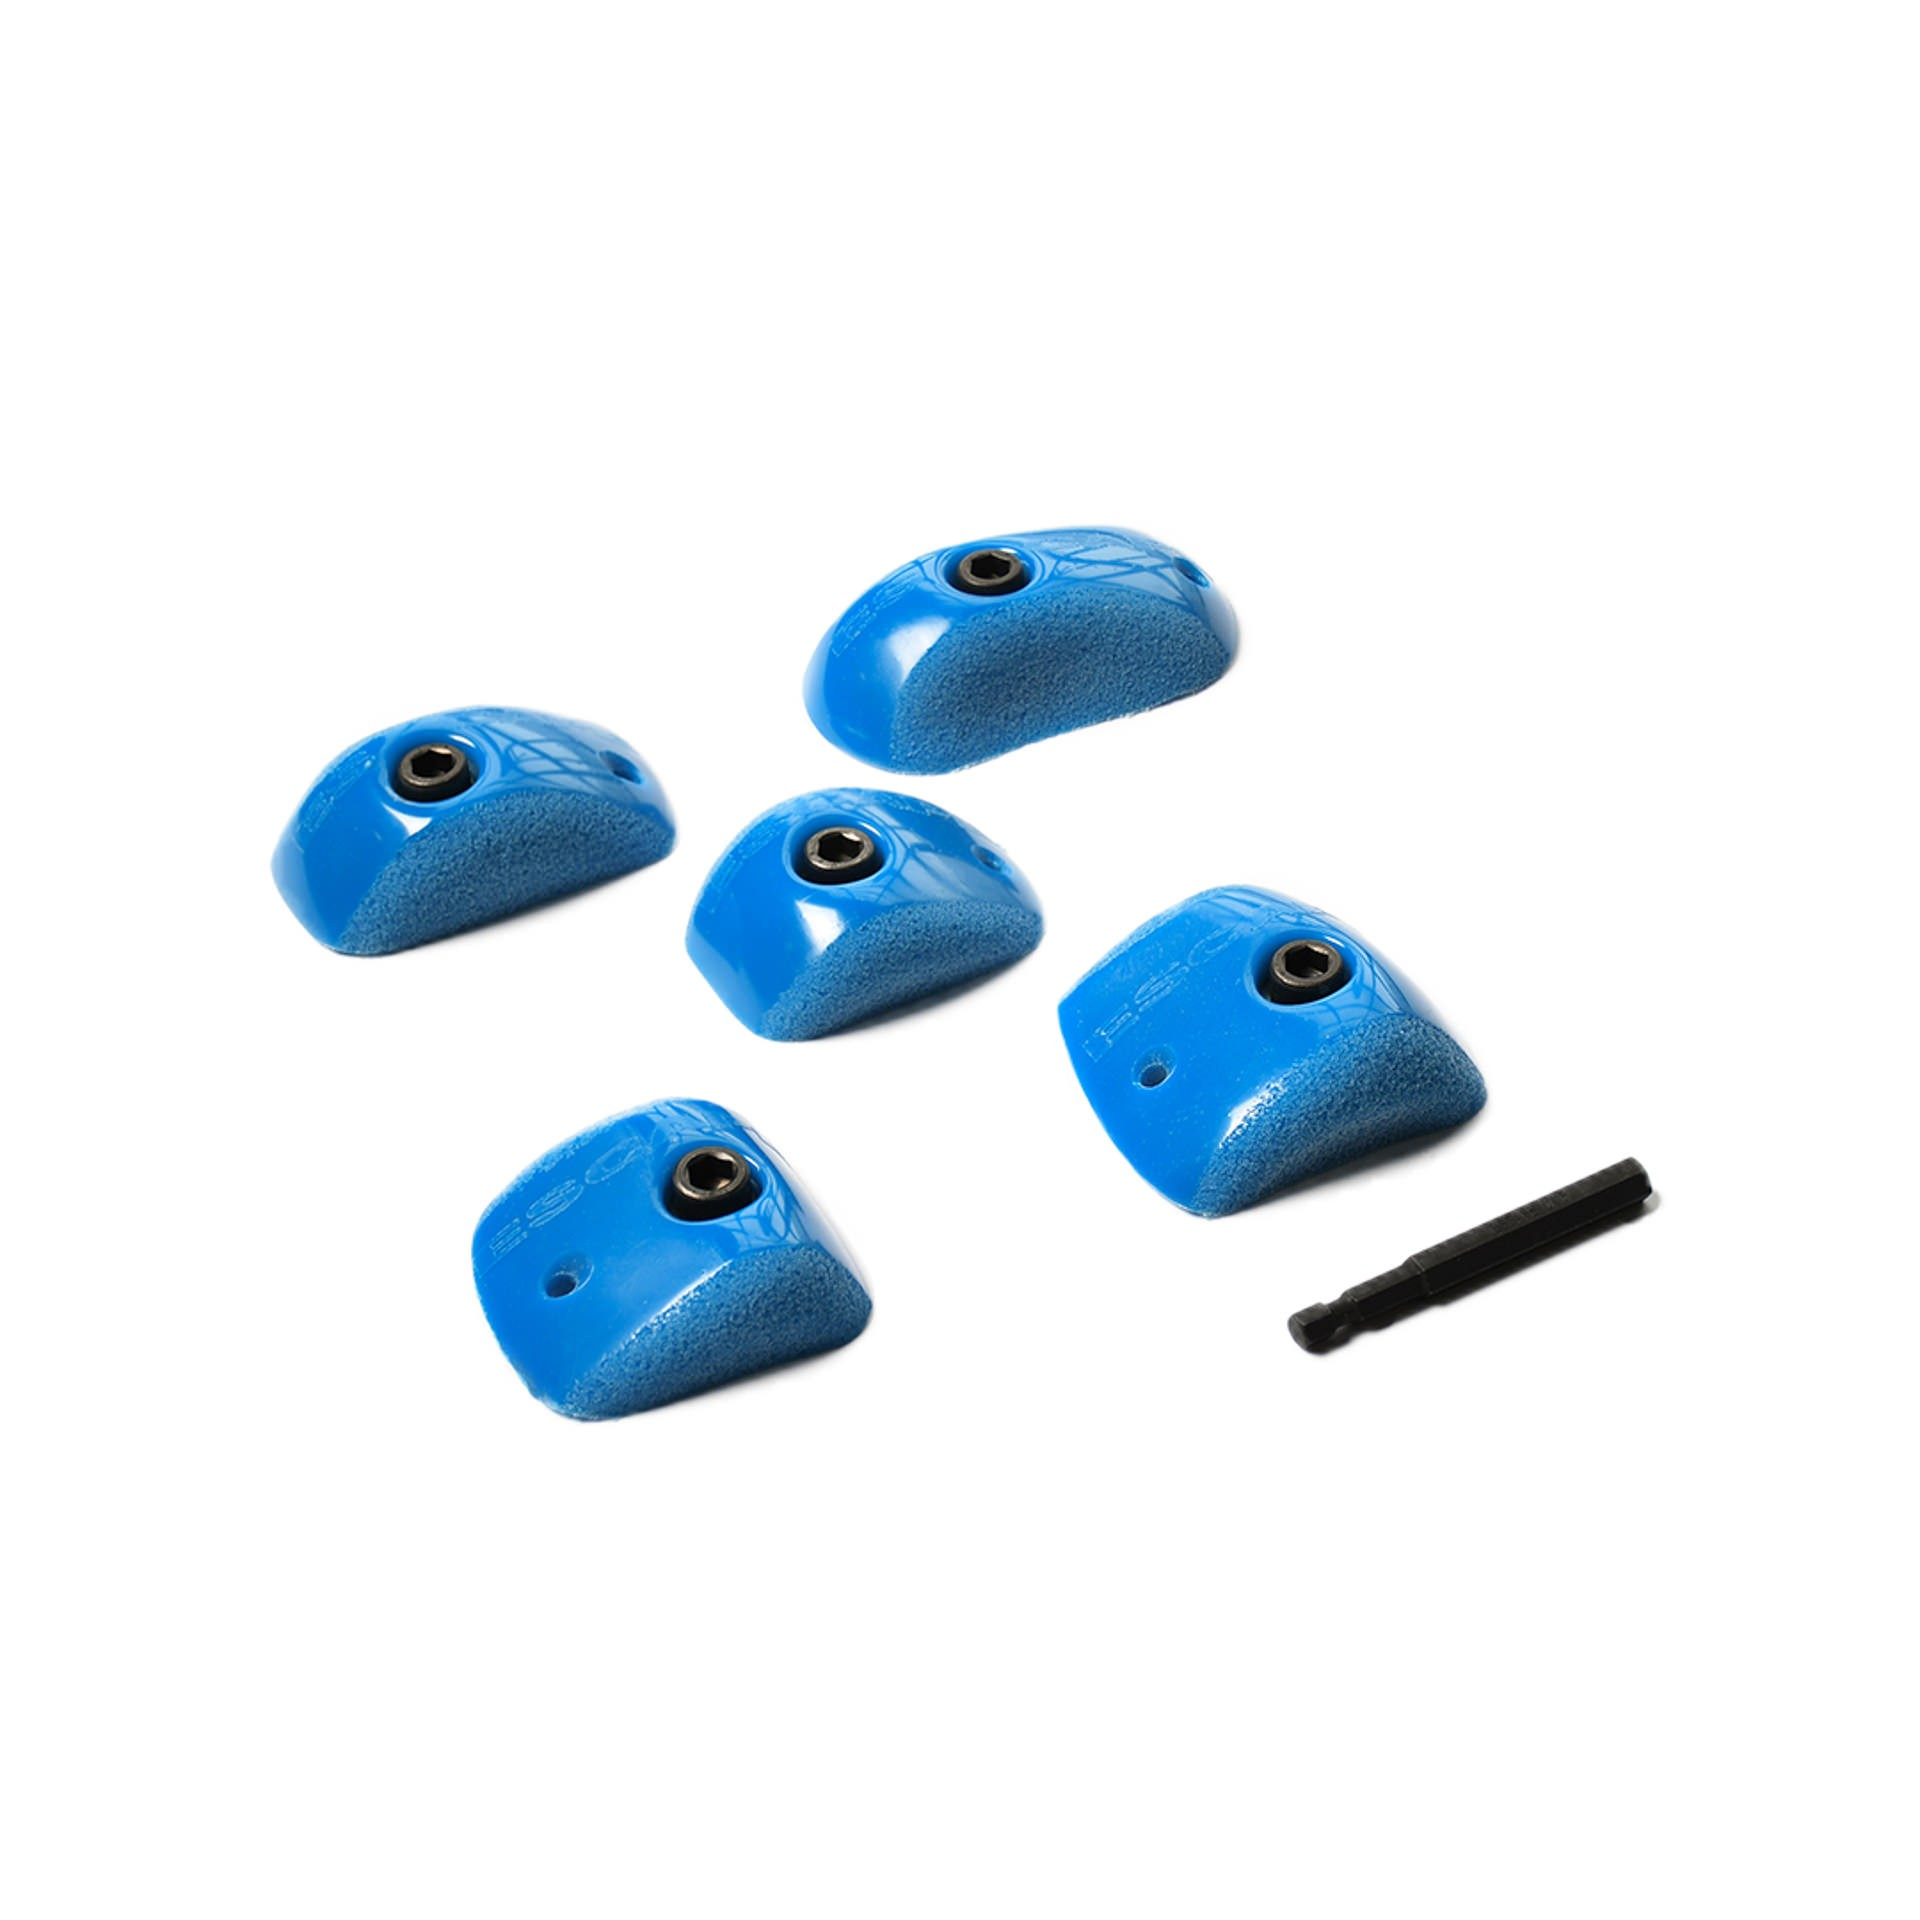 Micro Pinches - Holds.fr